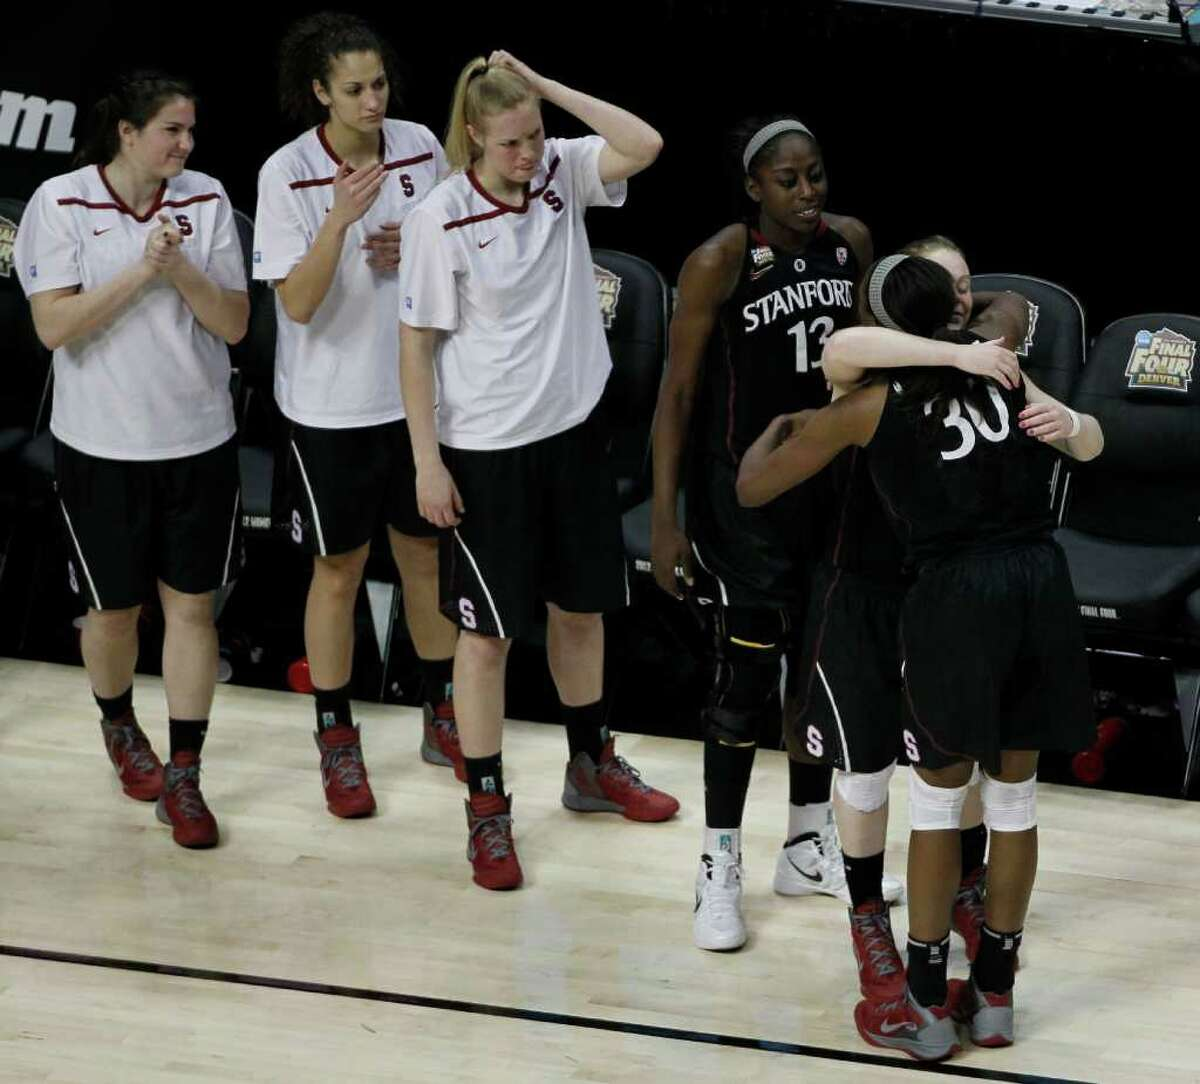 Stanford forward Nnemkadi Ogwumike (30) hugs Stanford guard Lindy La Rocque (15) as the team watches after the NCAA women's Final Four semifinal college basketball game against the Baylor, in Denver, Sunday, April 1, 2012. Baylor defeated Stanford 59-47.